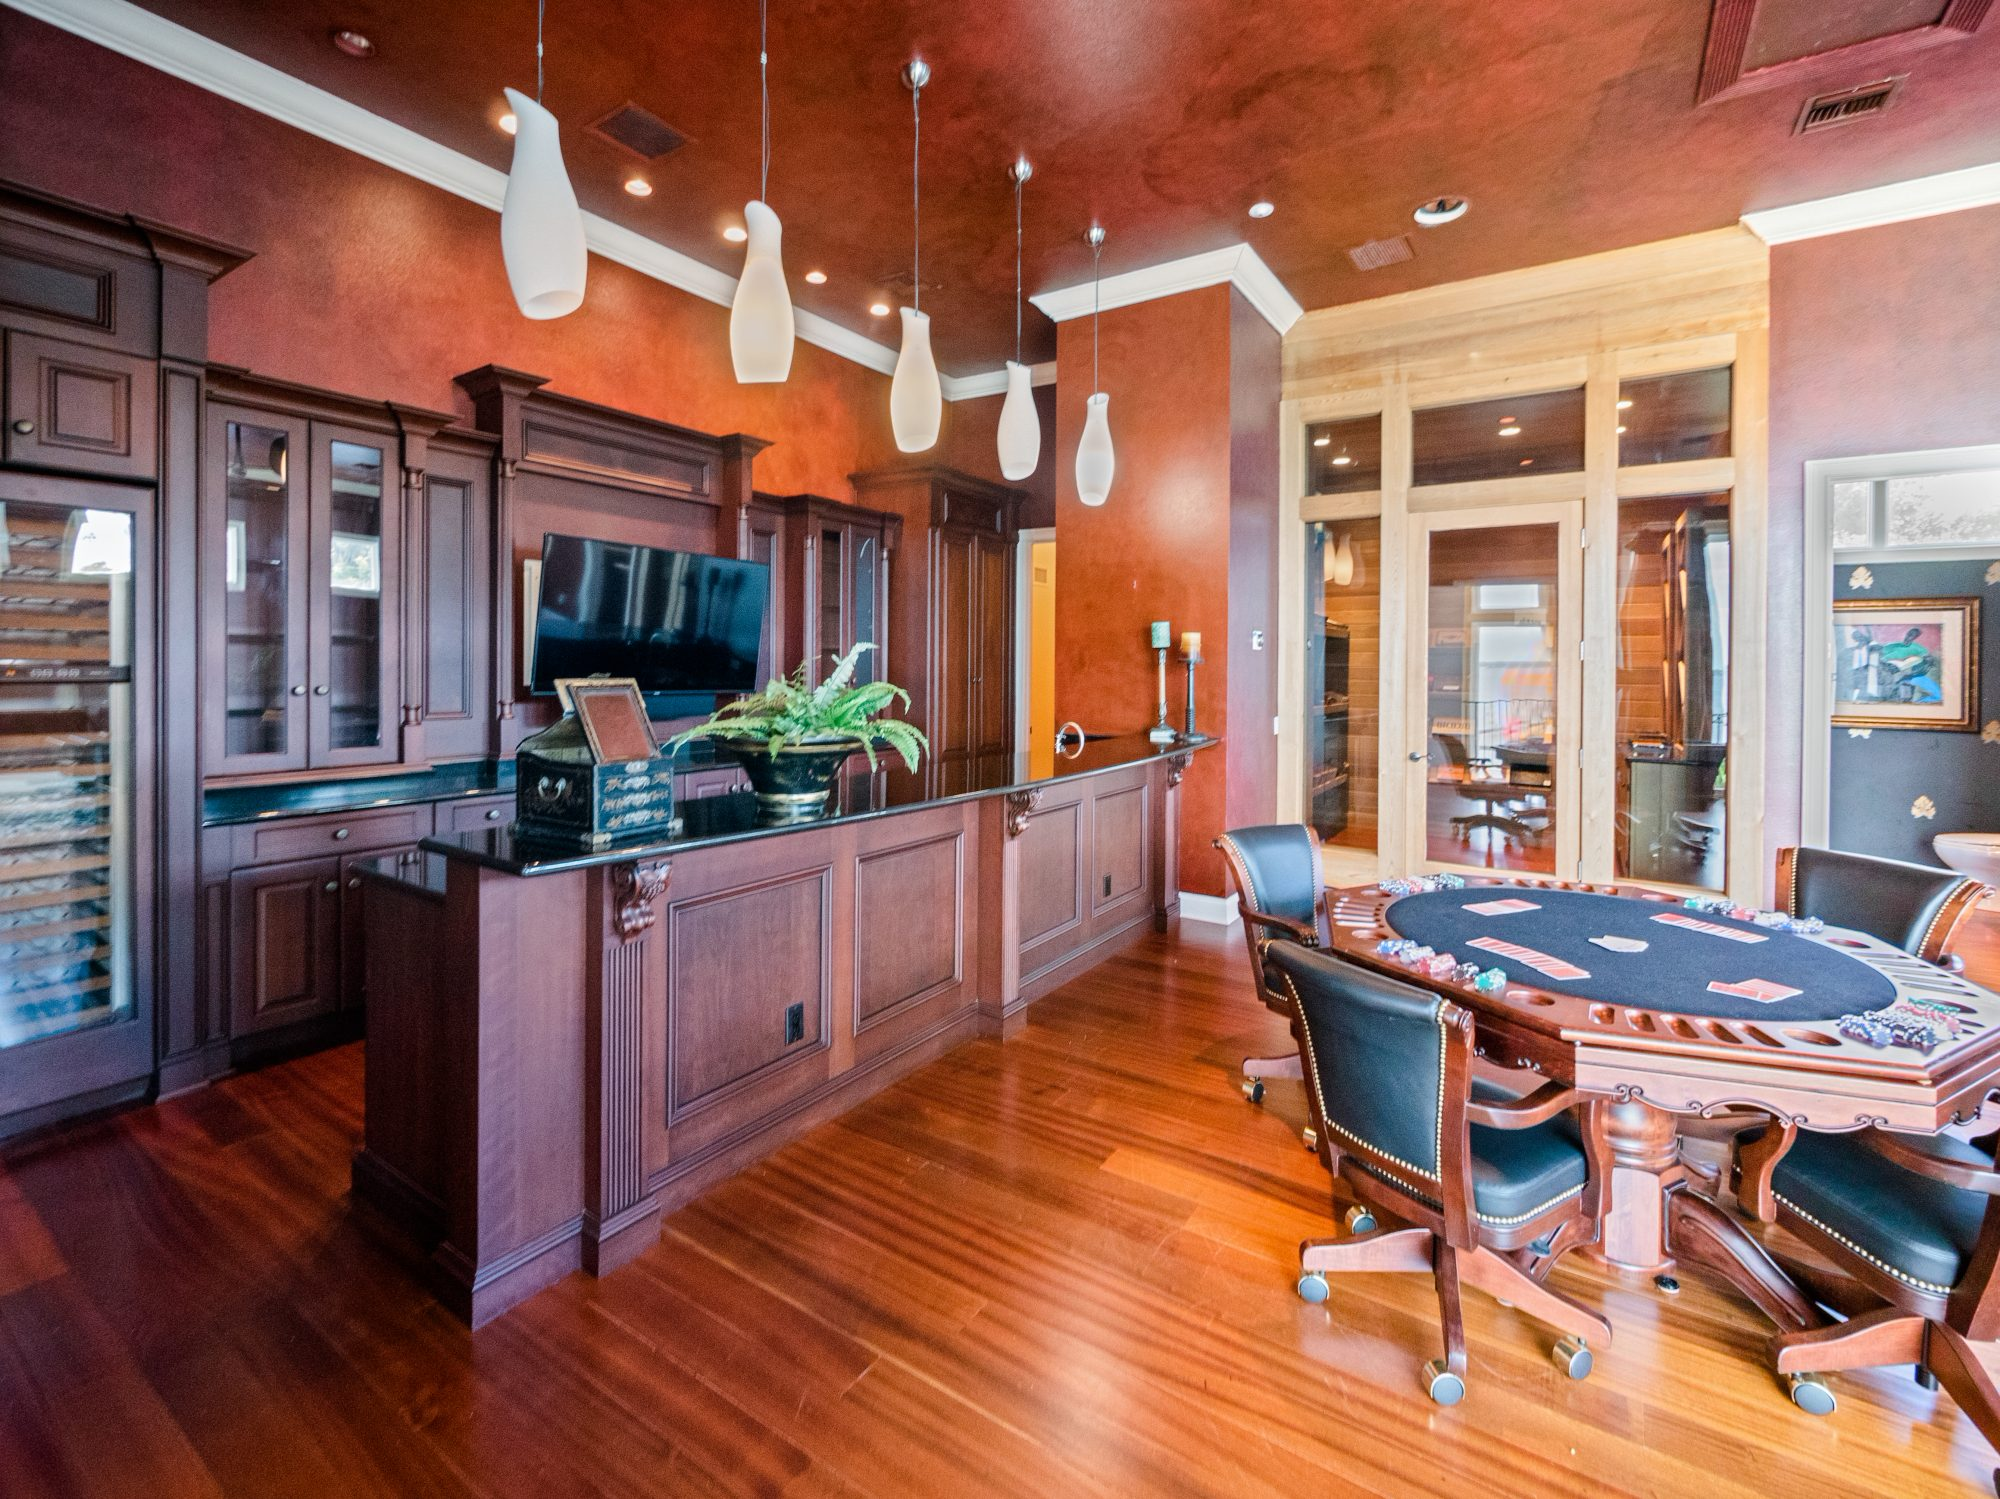 SHAQUILLE O'NEAL FLORIDA MANSION 9